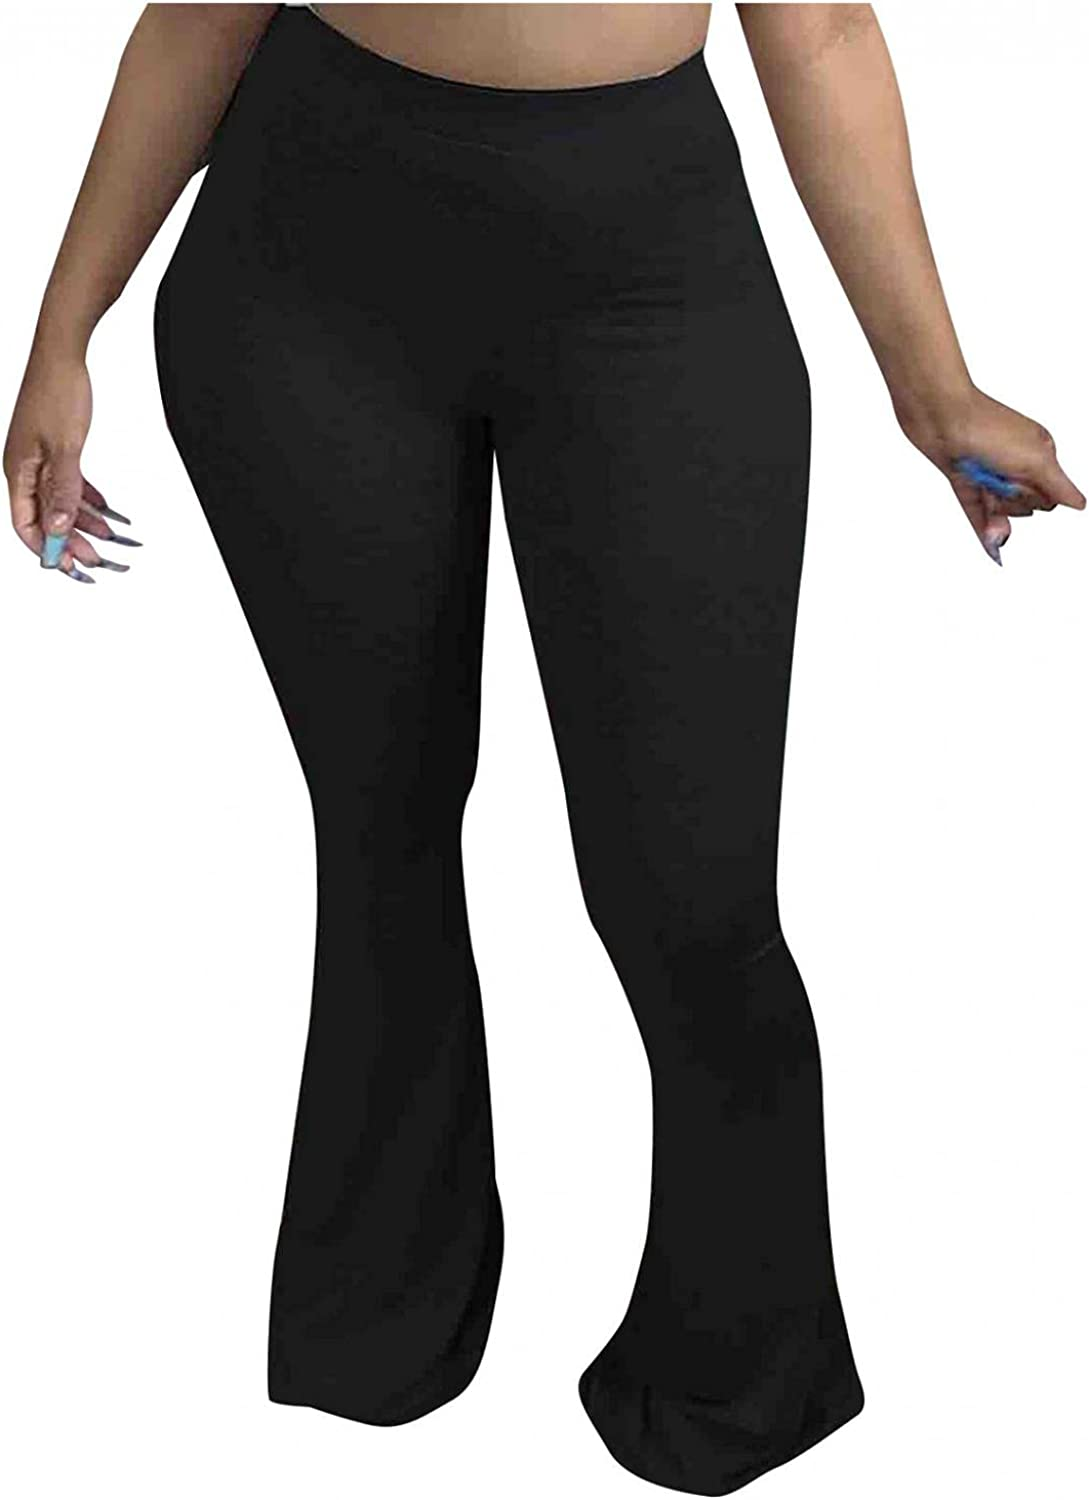 LEIYAN Womens Casual Bell Bottom Pants High Waist Skinny Fit Wide Leg Dancing Bootcut Trousers Flares Plus Size